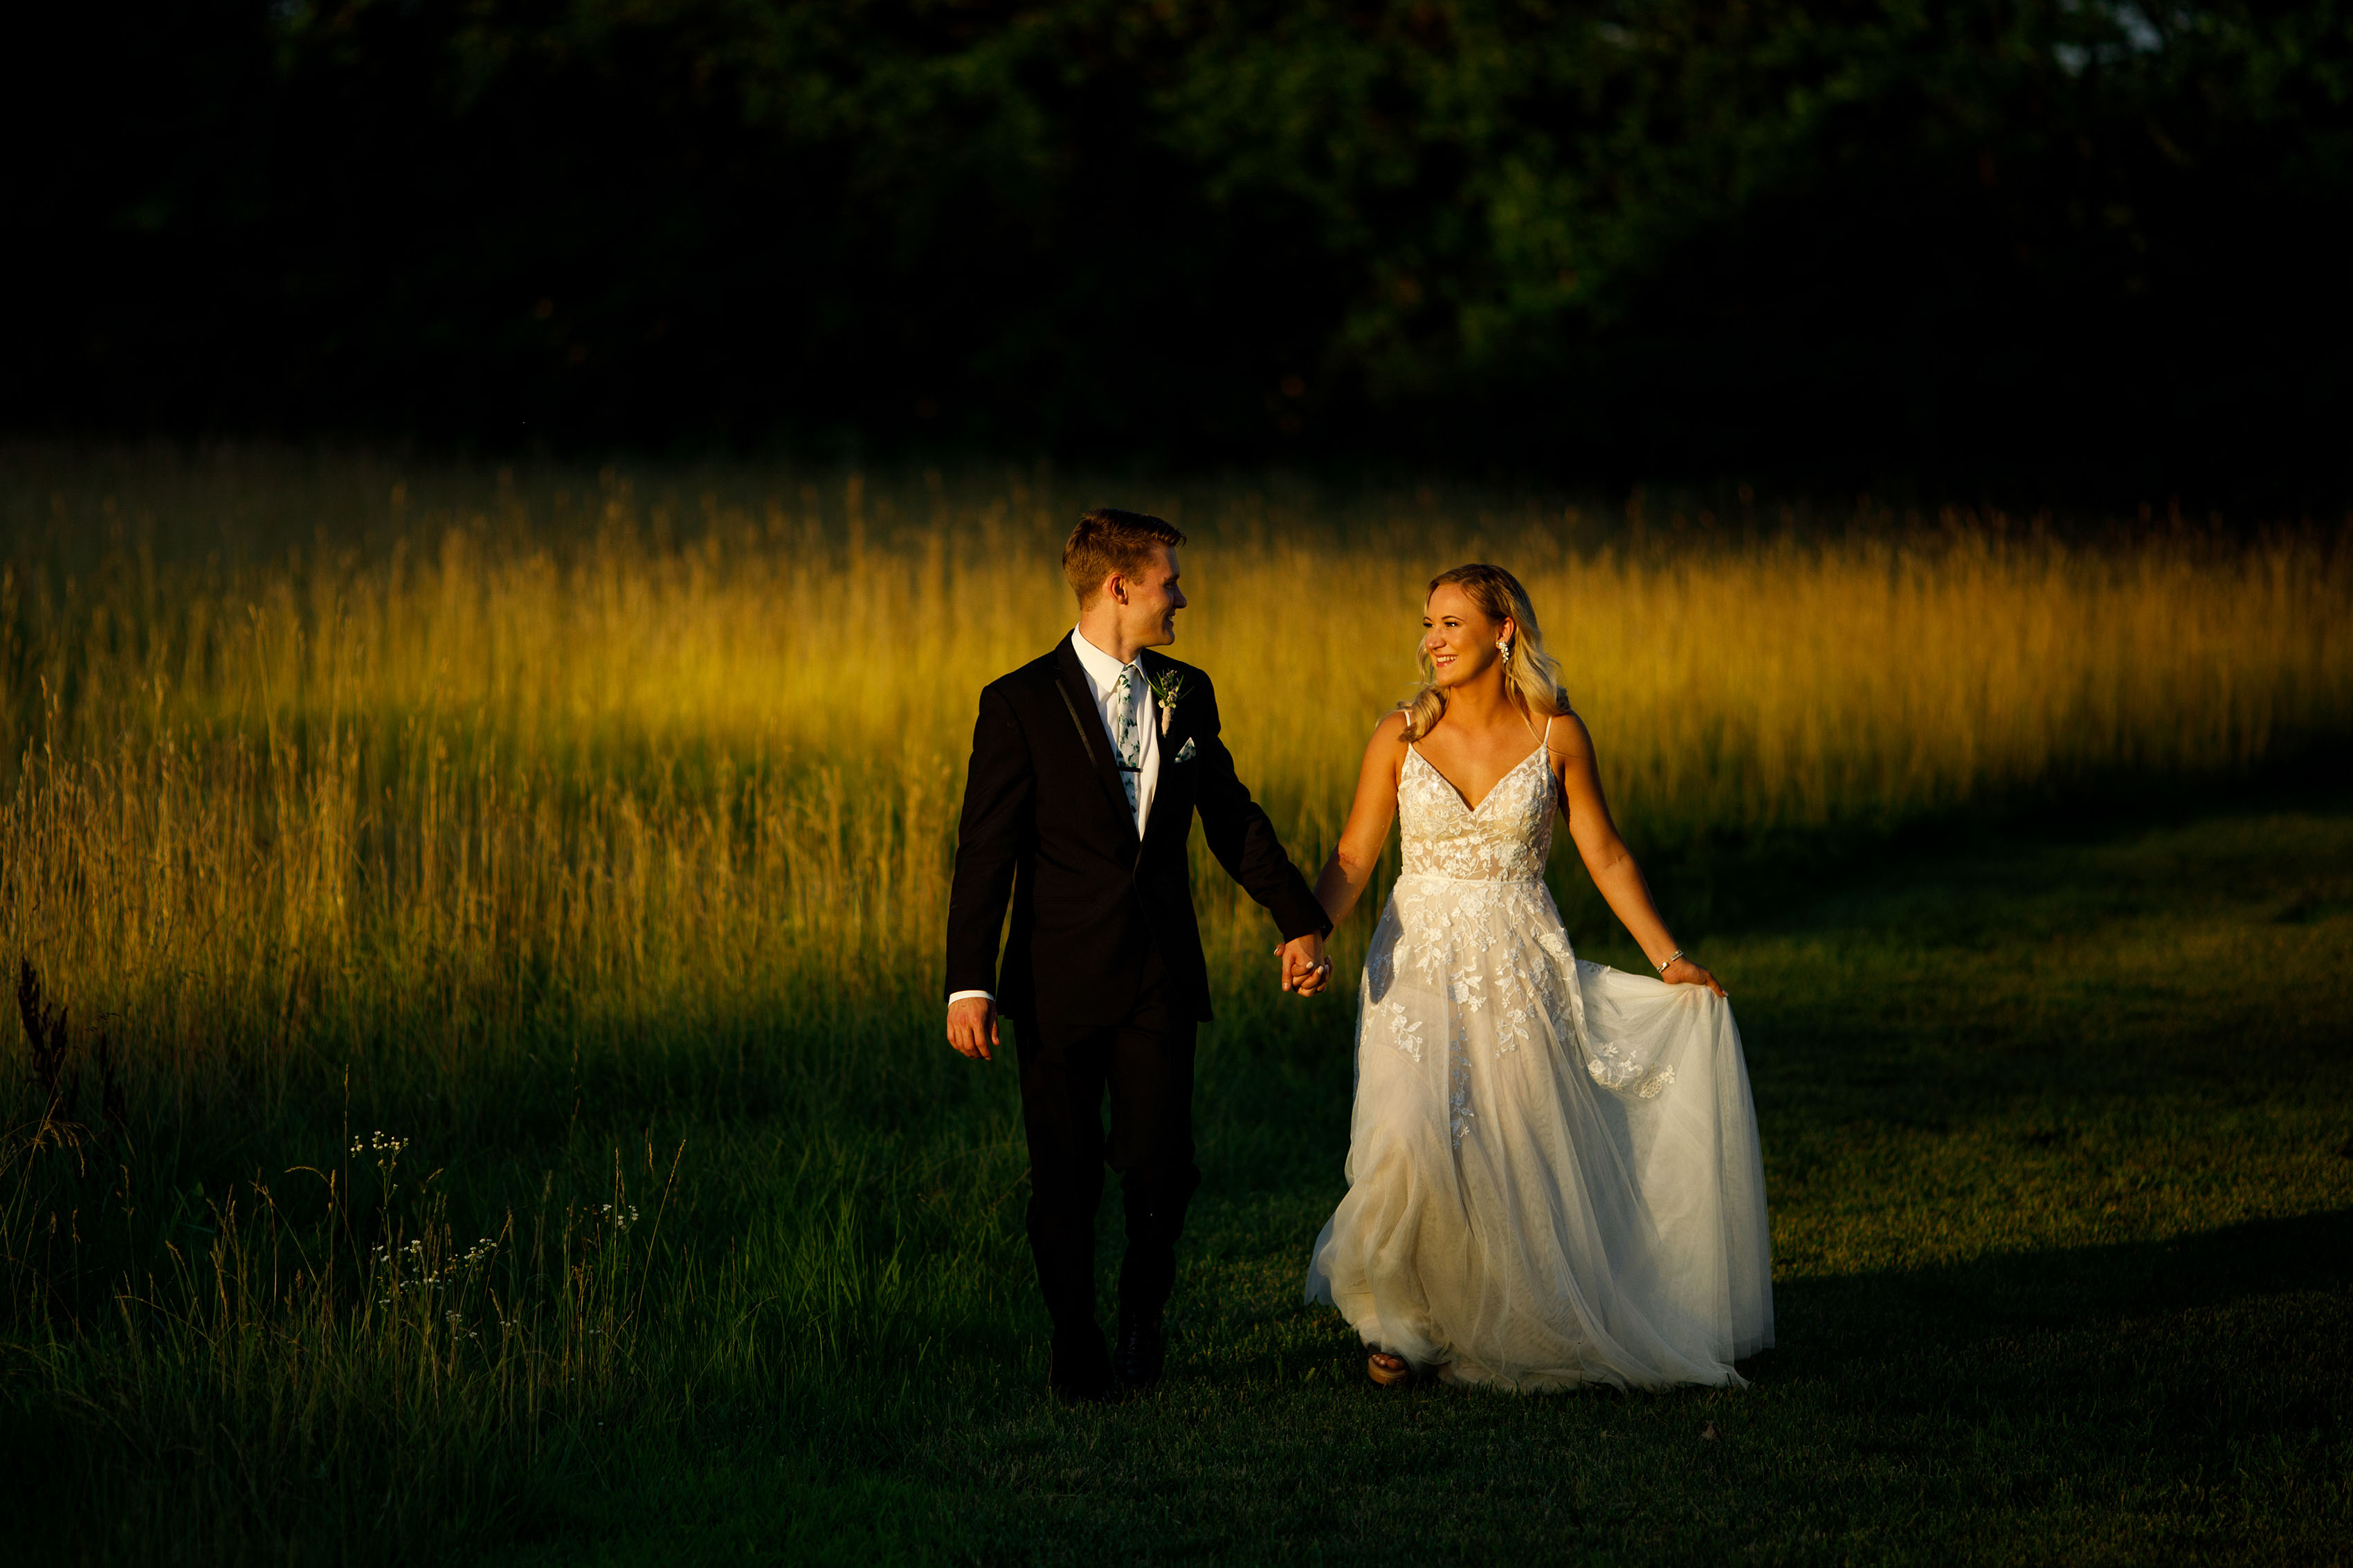 The newlyweds walk together at golden hour during their summer Emerson Fields wedding in Excello, Missouri